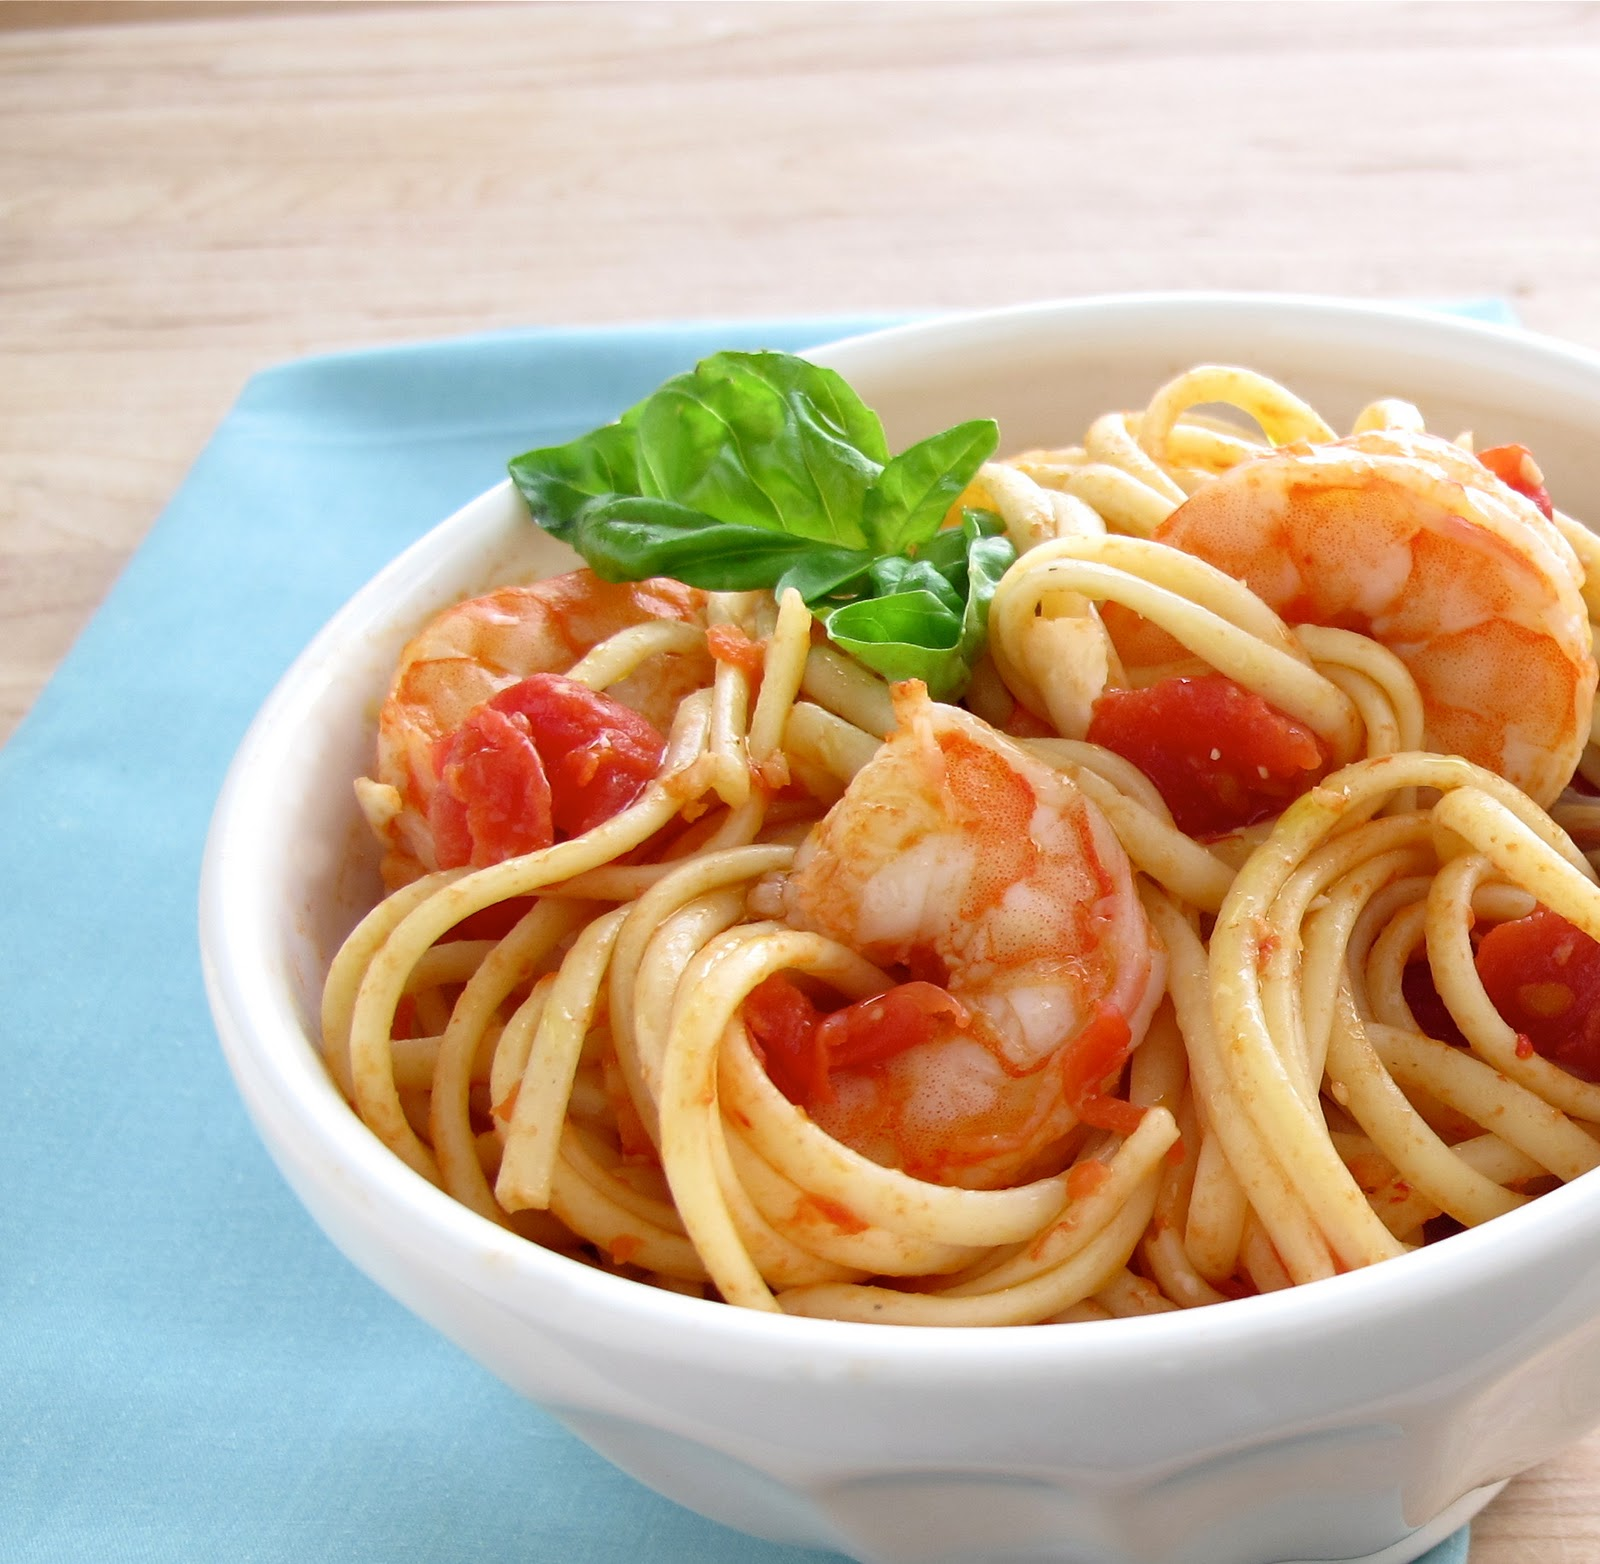 Jenny Steffens Hobick Recipes: Jenny Steffens Hobick: Arrabiata Sauce With Shrimp